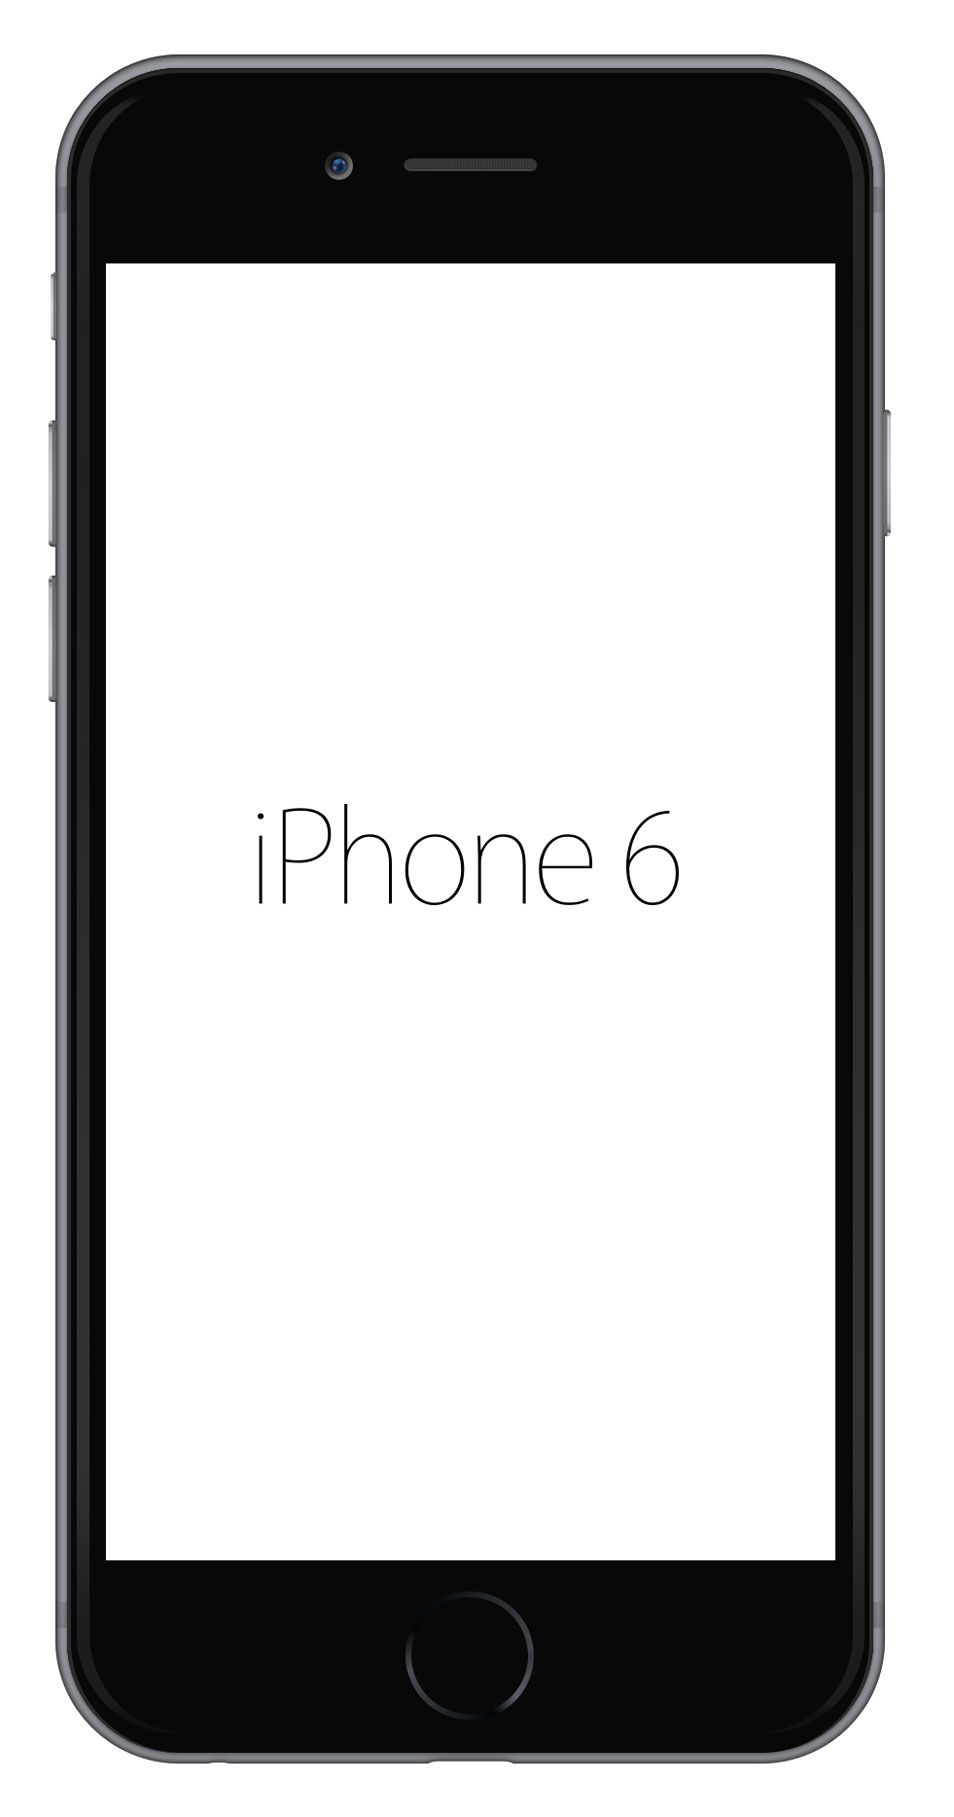 iPhone 6 Sketch Template